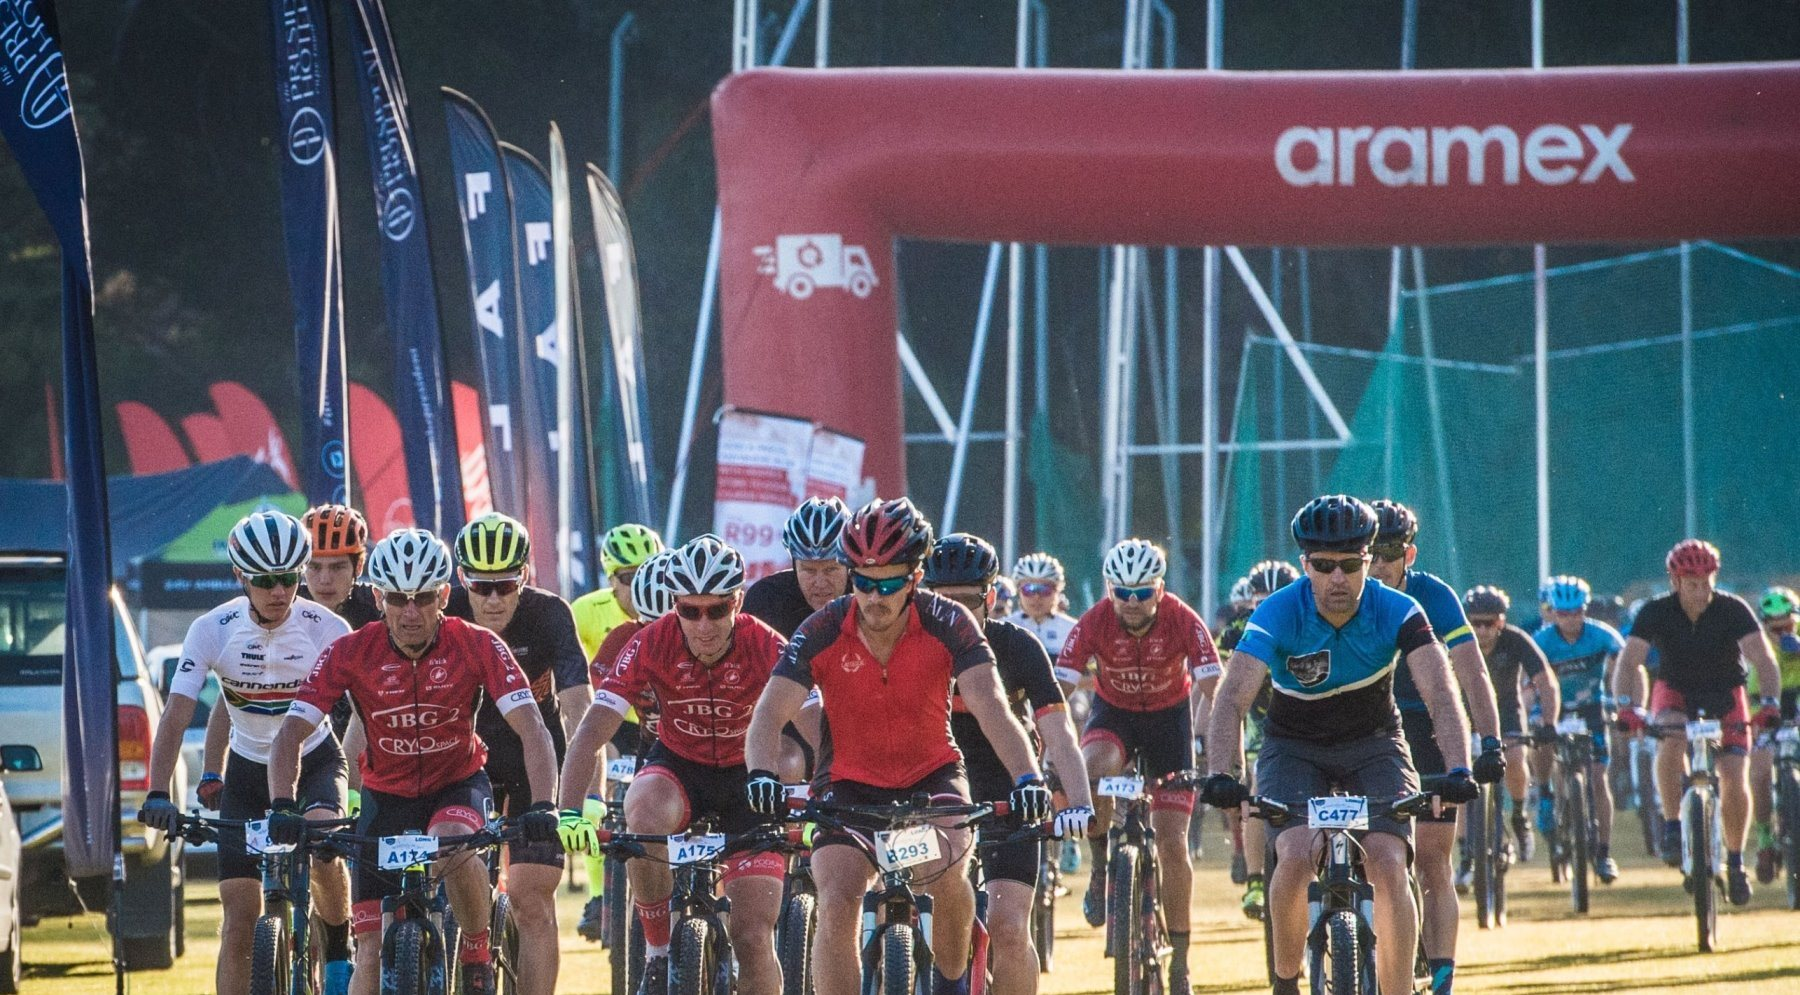 Aramex revving to deliver rider jerseys at Origin Of Trails MTB Experience